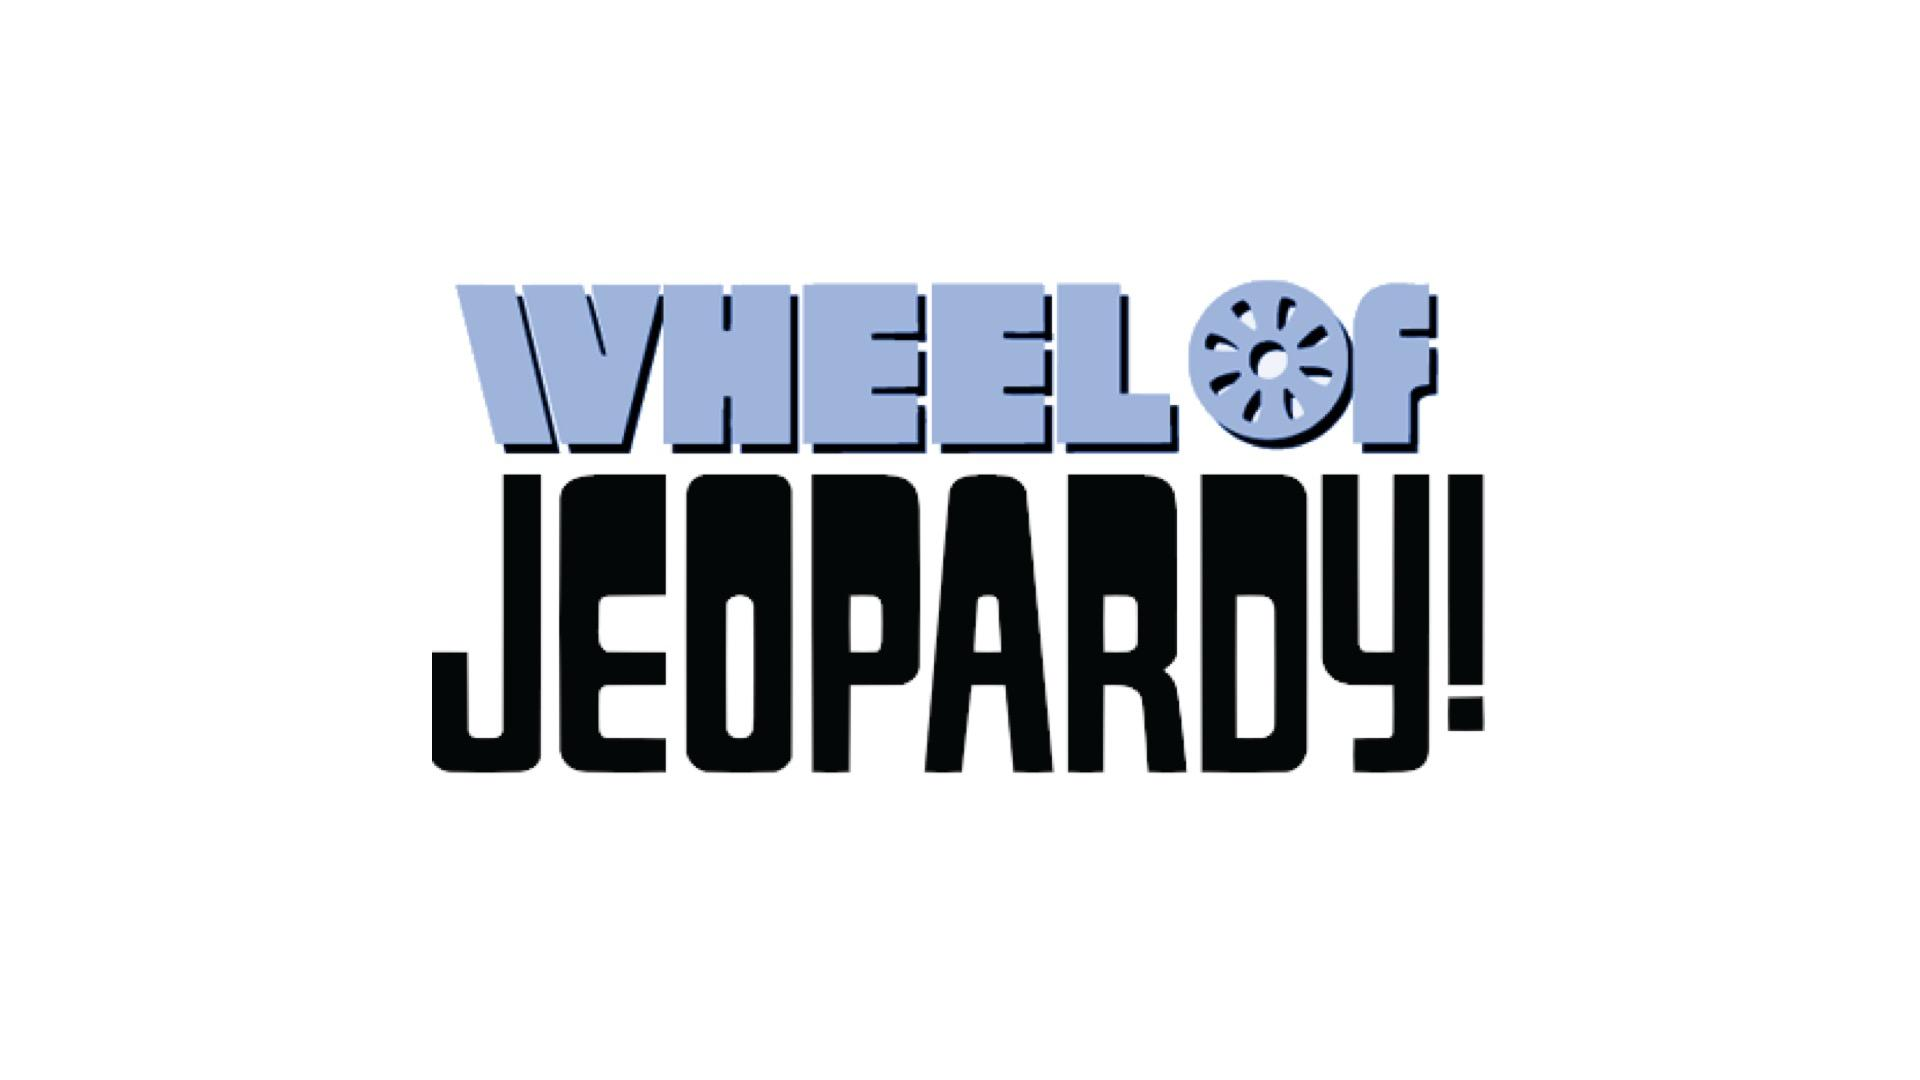 Wheel of Jeopardy Science Live Show.